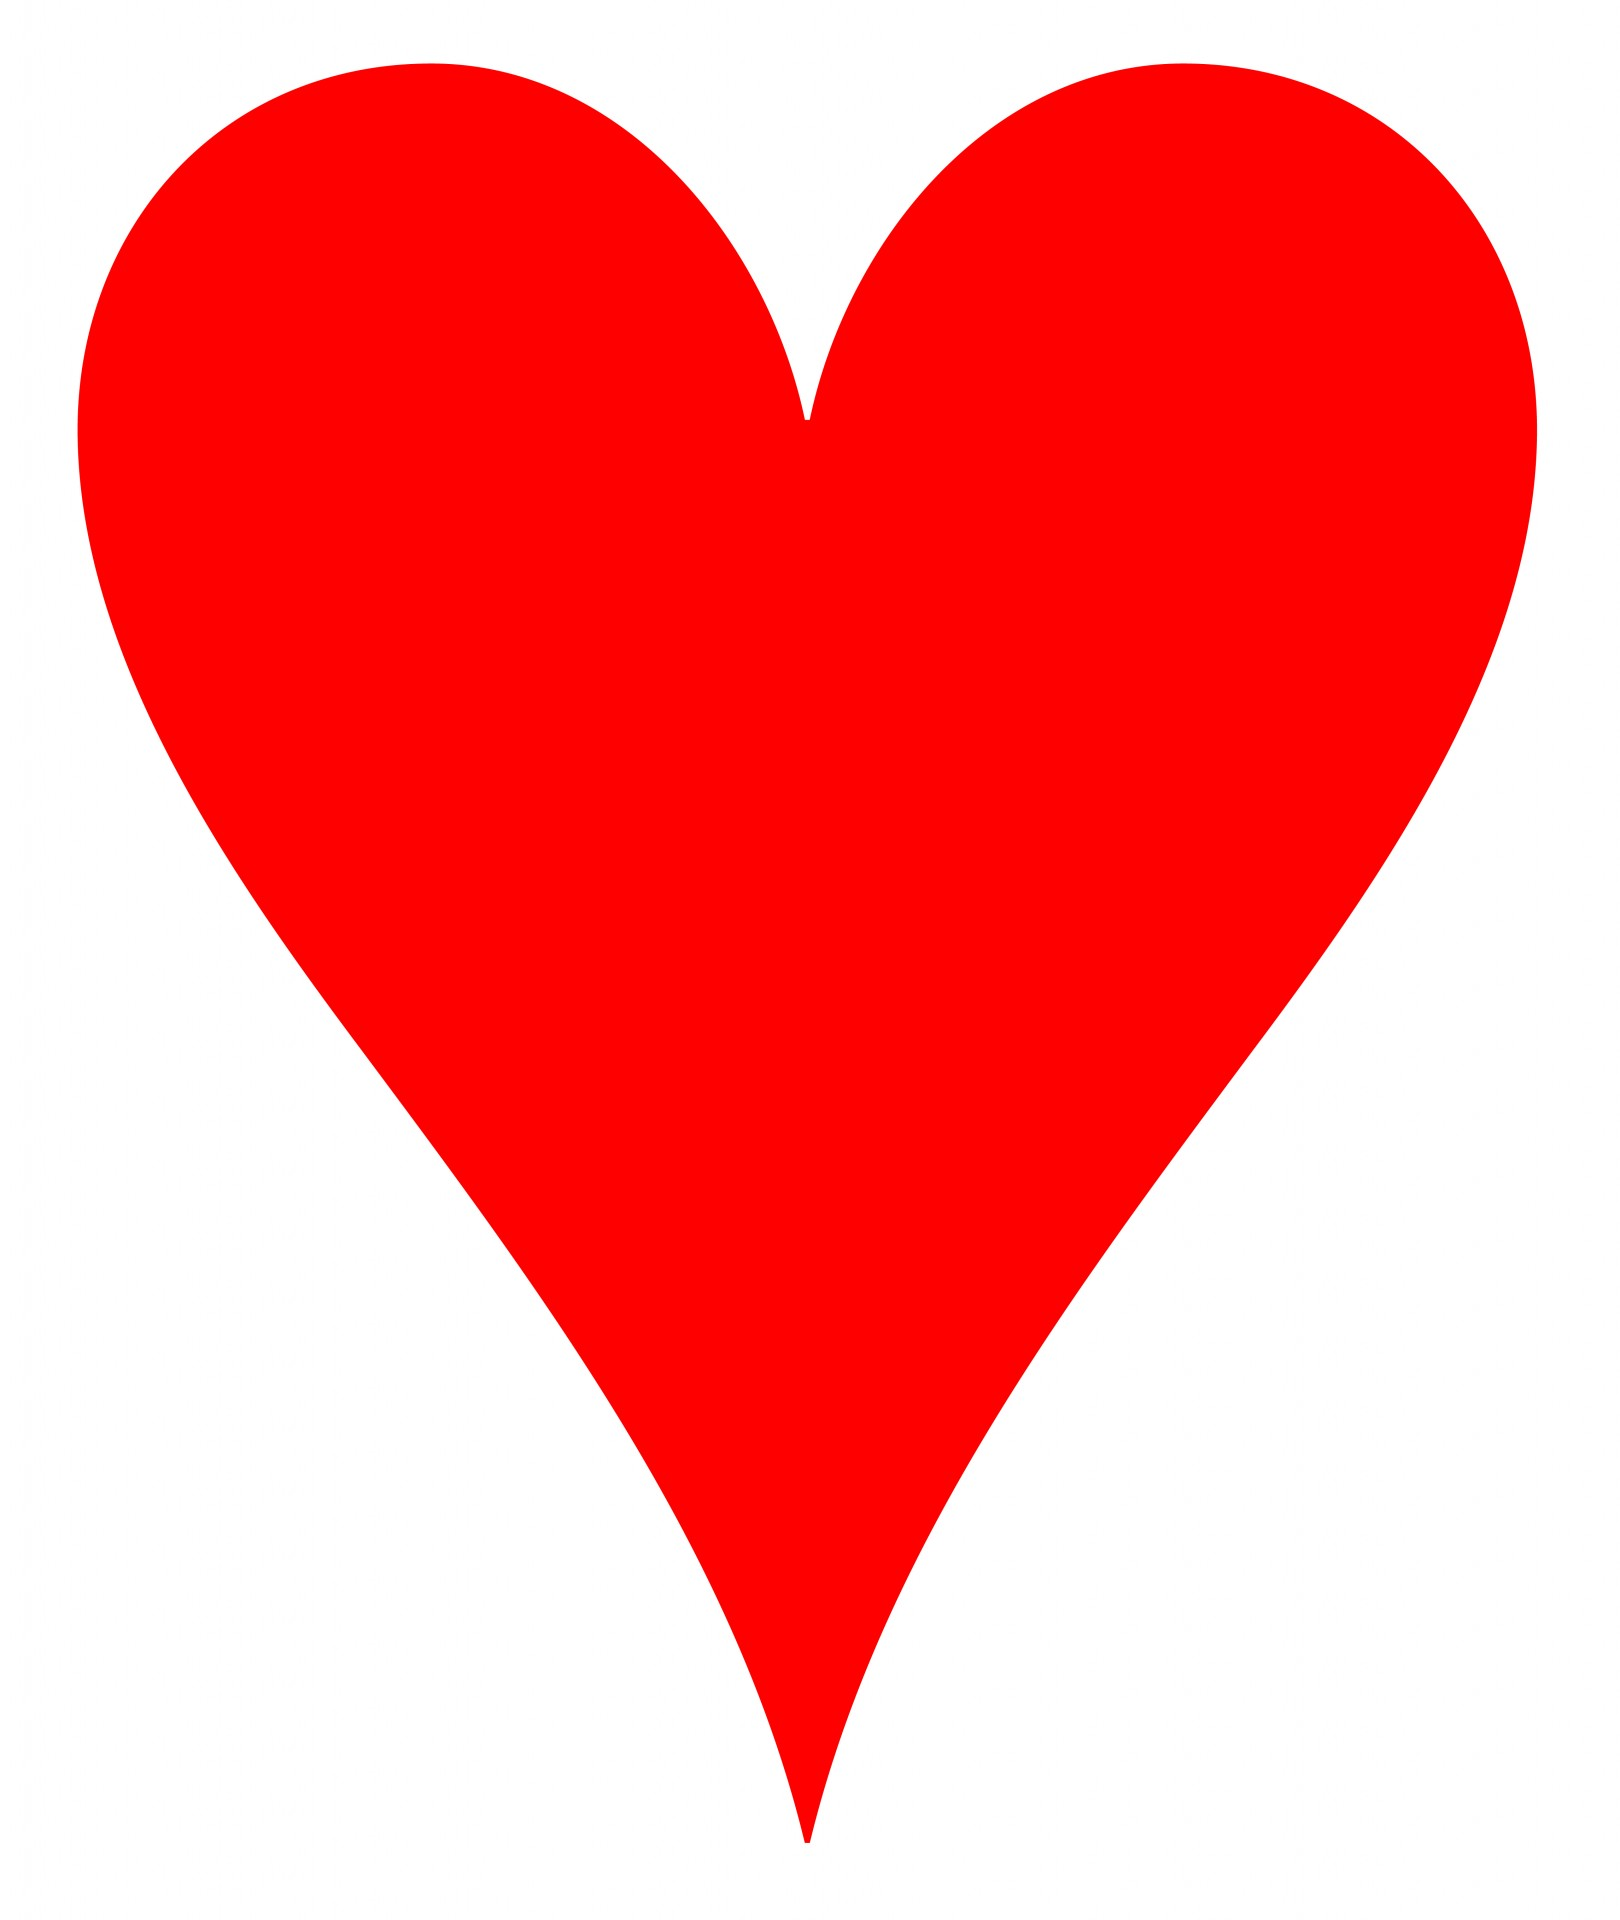 Red heart,heart,red,clipart,love - free photo from needpix com